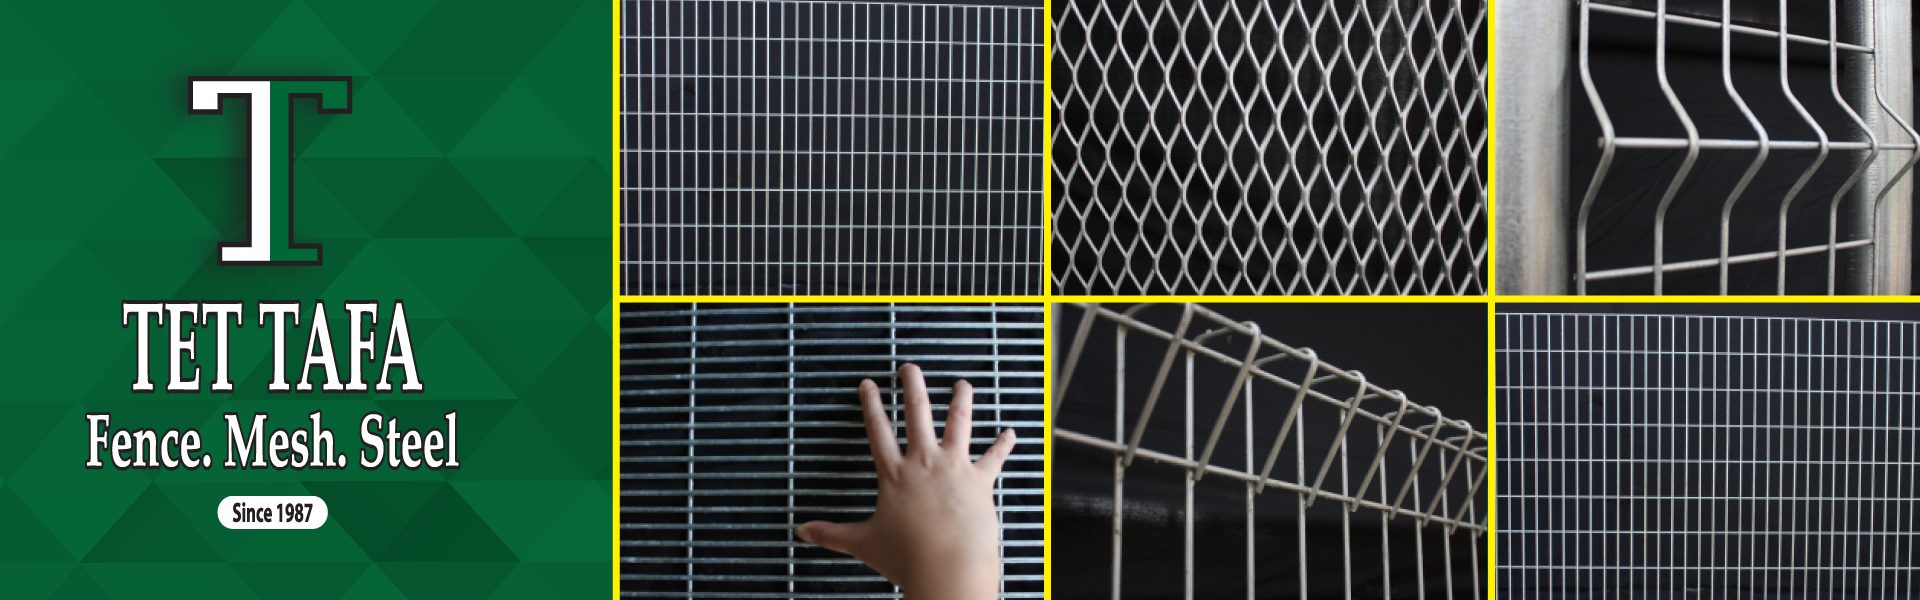 Razor Barbed Tape, Roll Top Fence and Chain Link Fence | TET Tafa